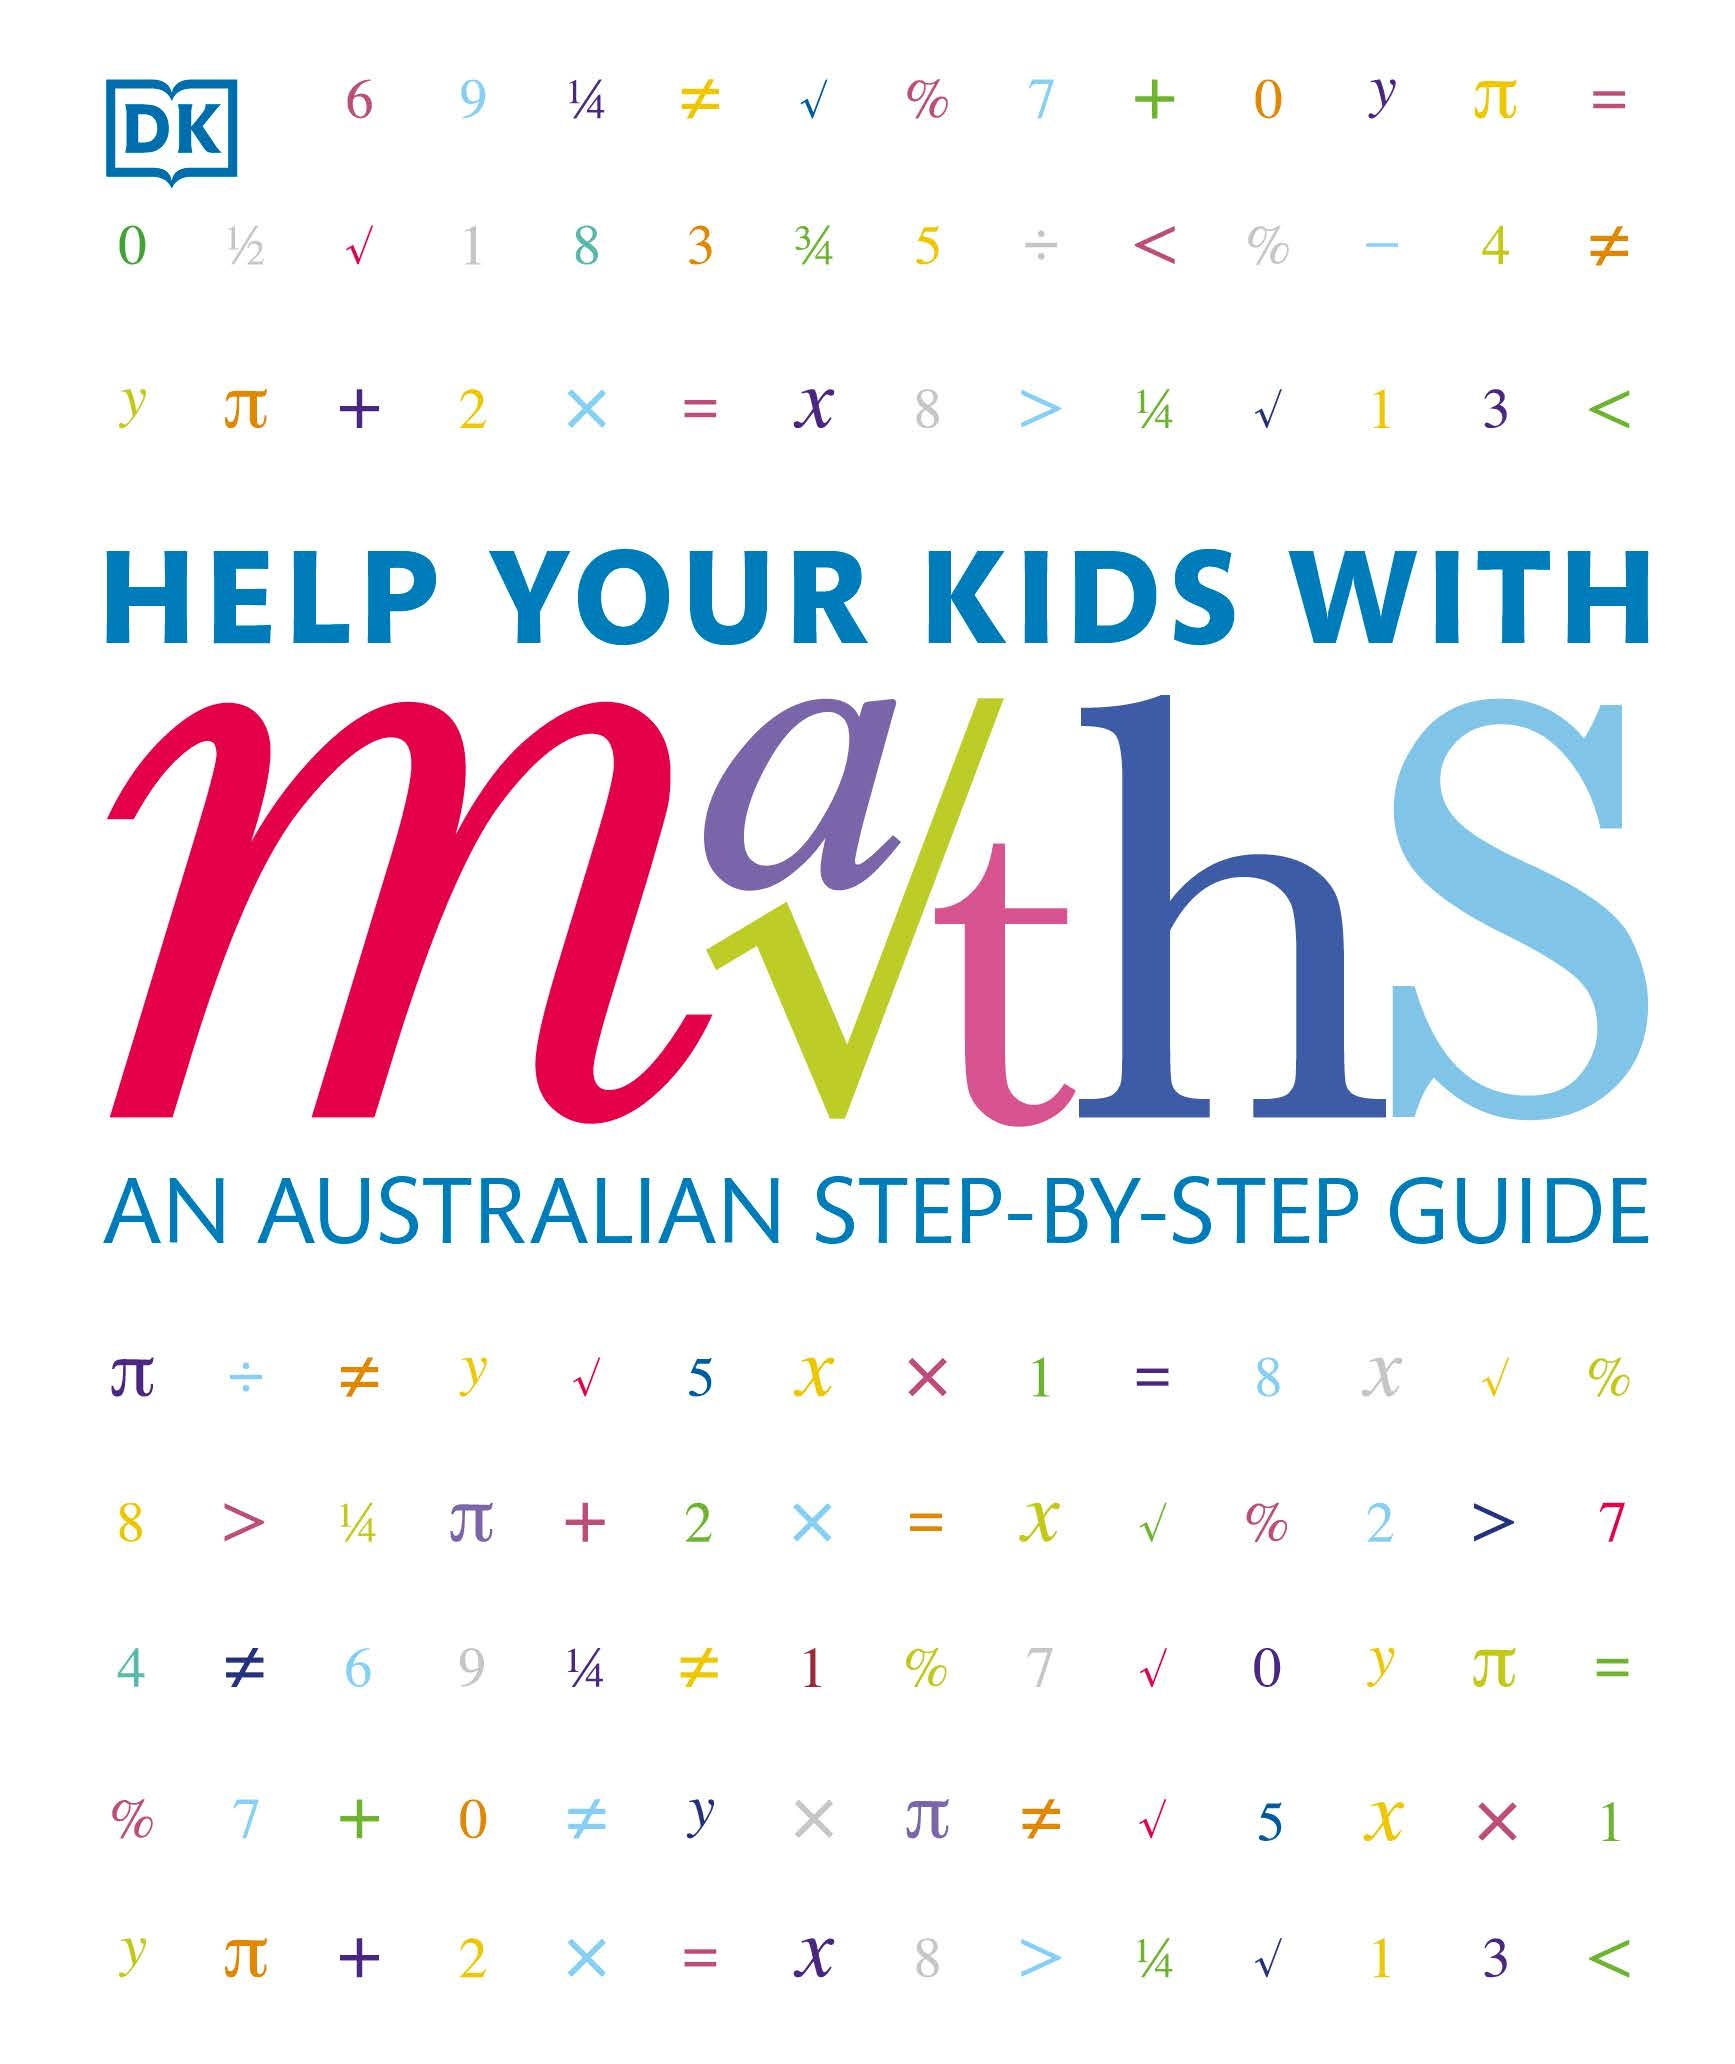 Kids Maths Book Cover ~ Help your kids with maths penguin books australia